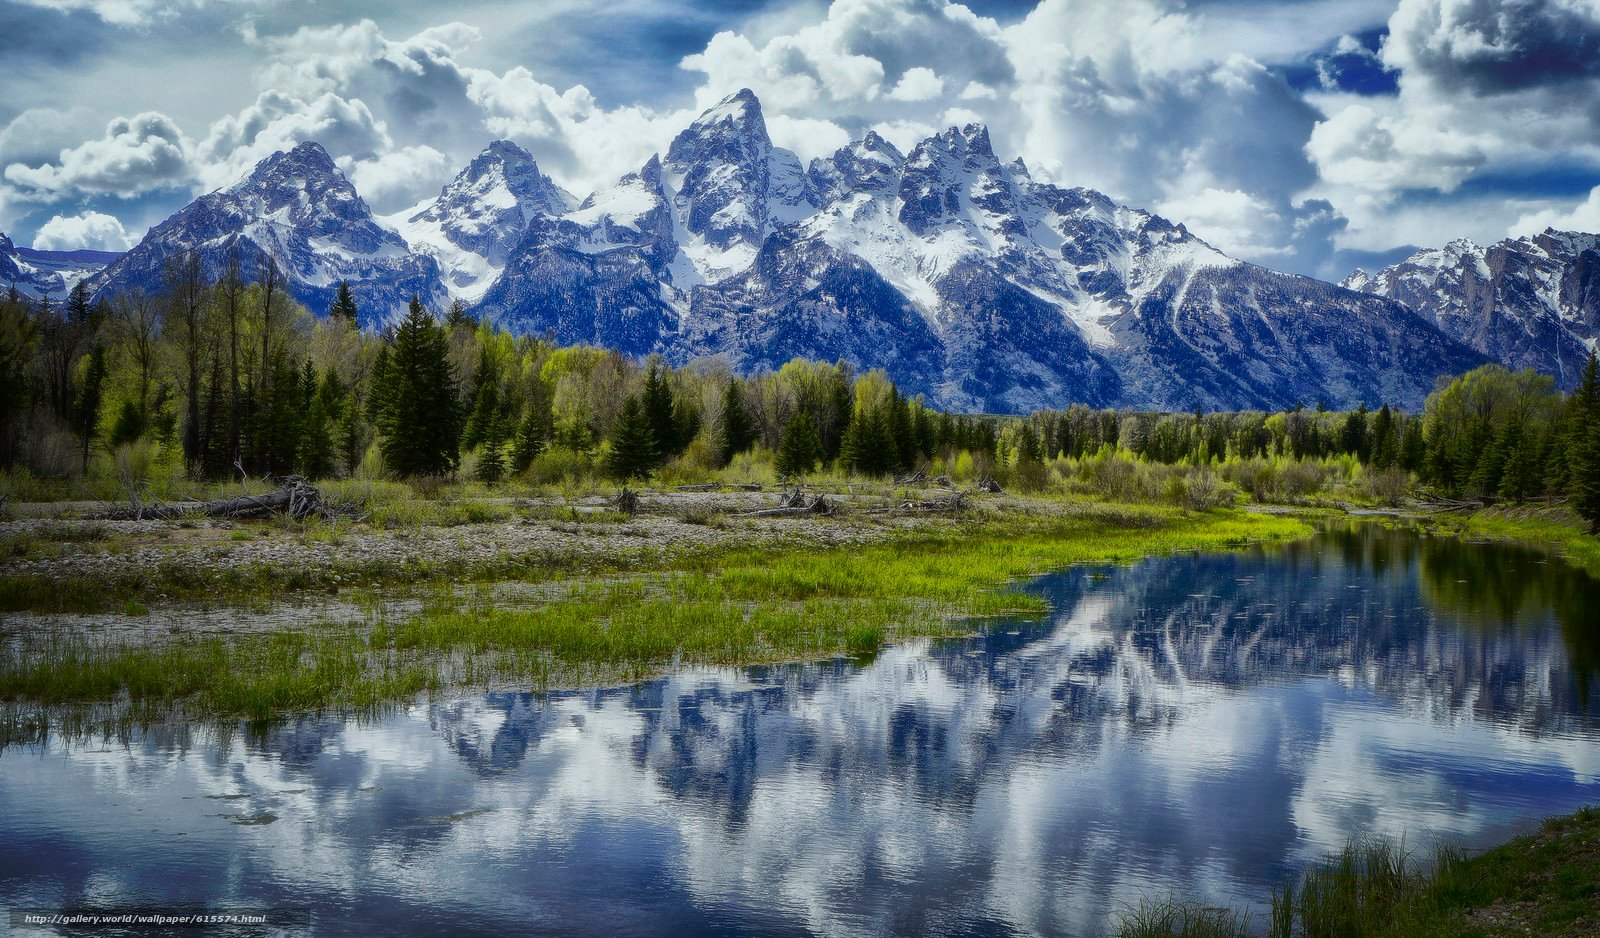 Jackson Hole Wyoming desktop wallpaper in the resolution 1600x938